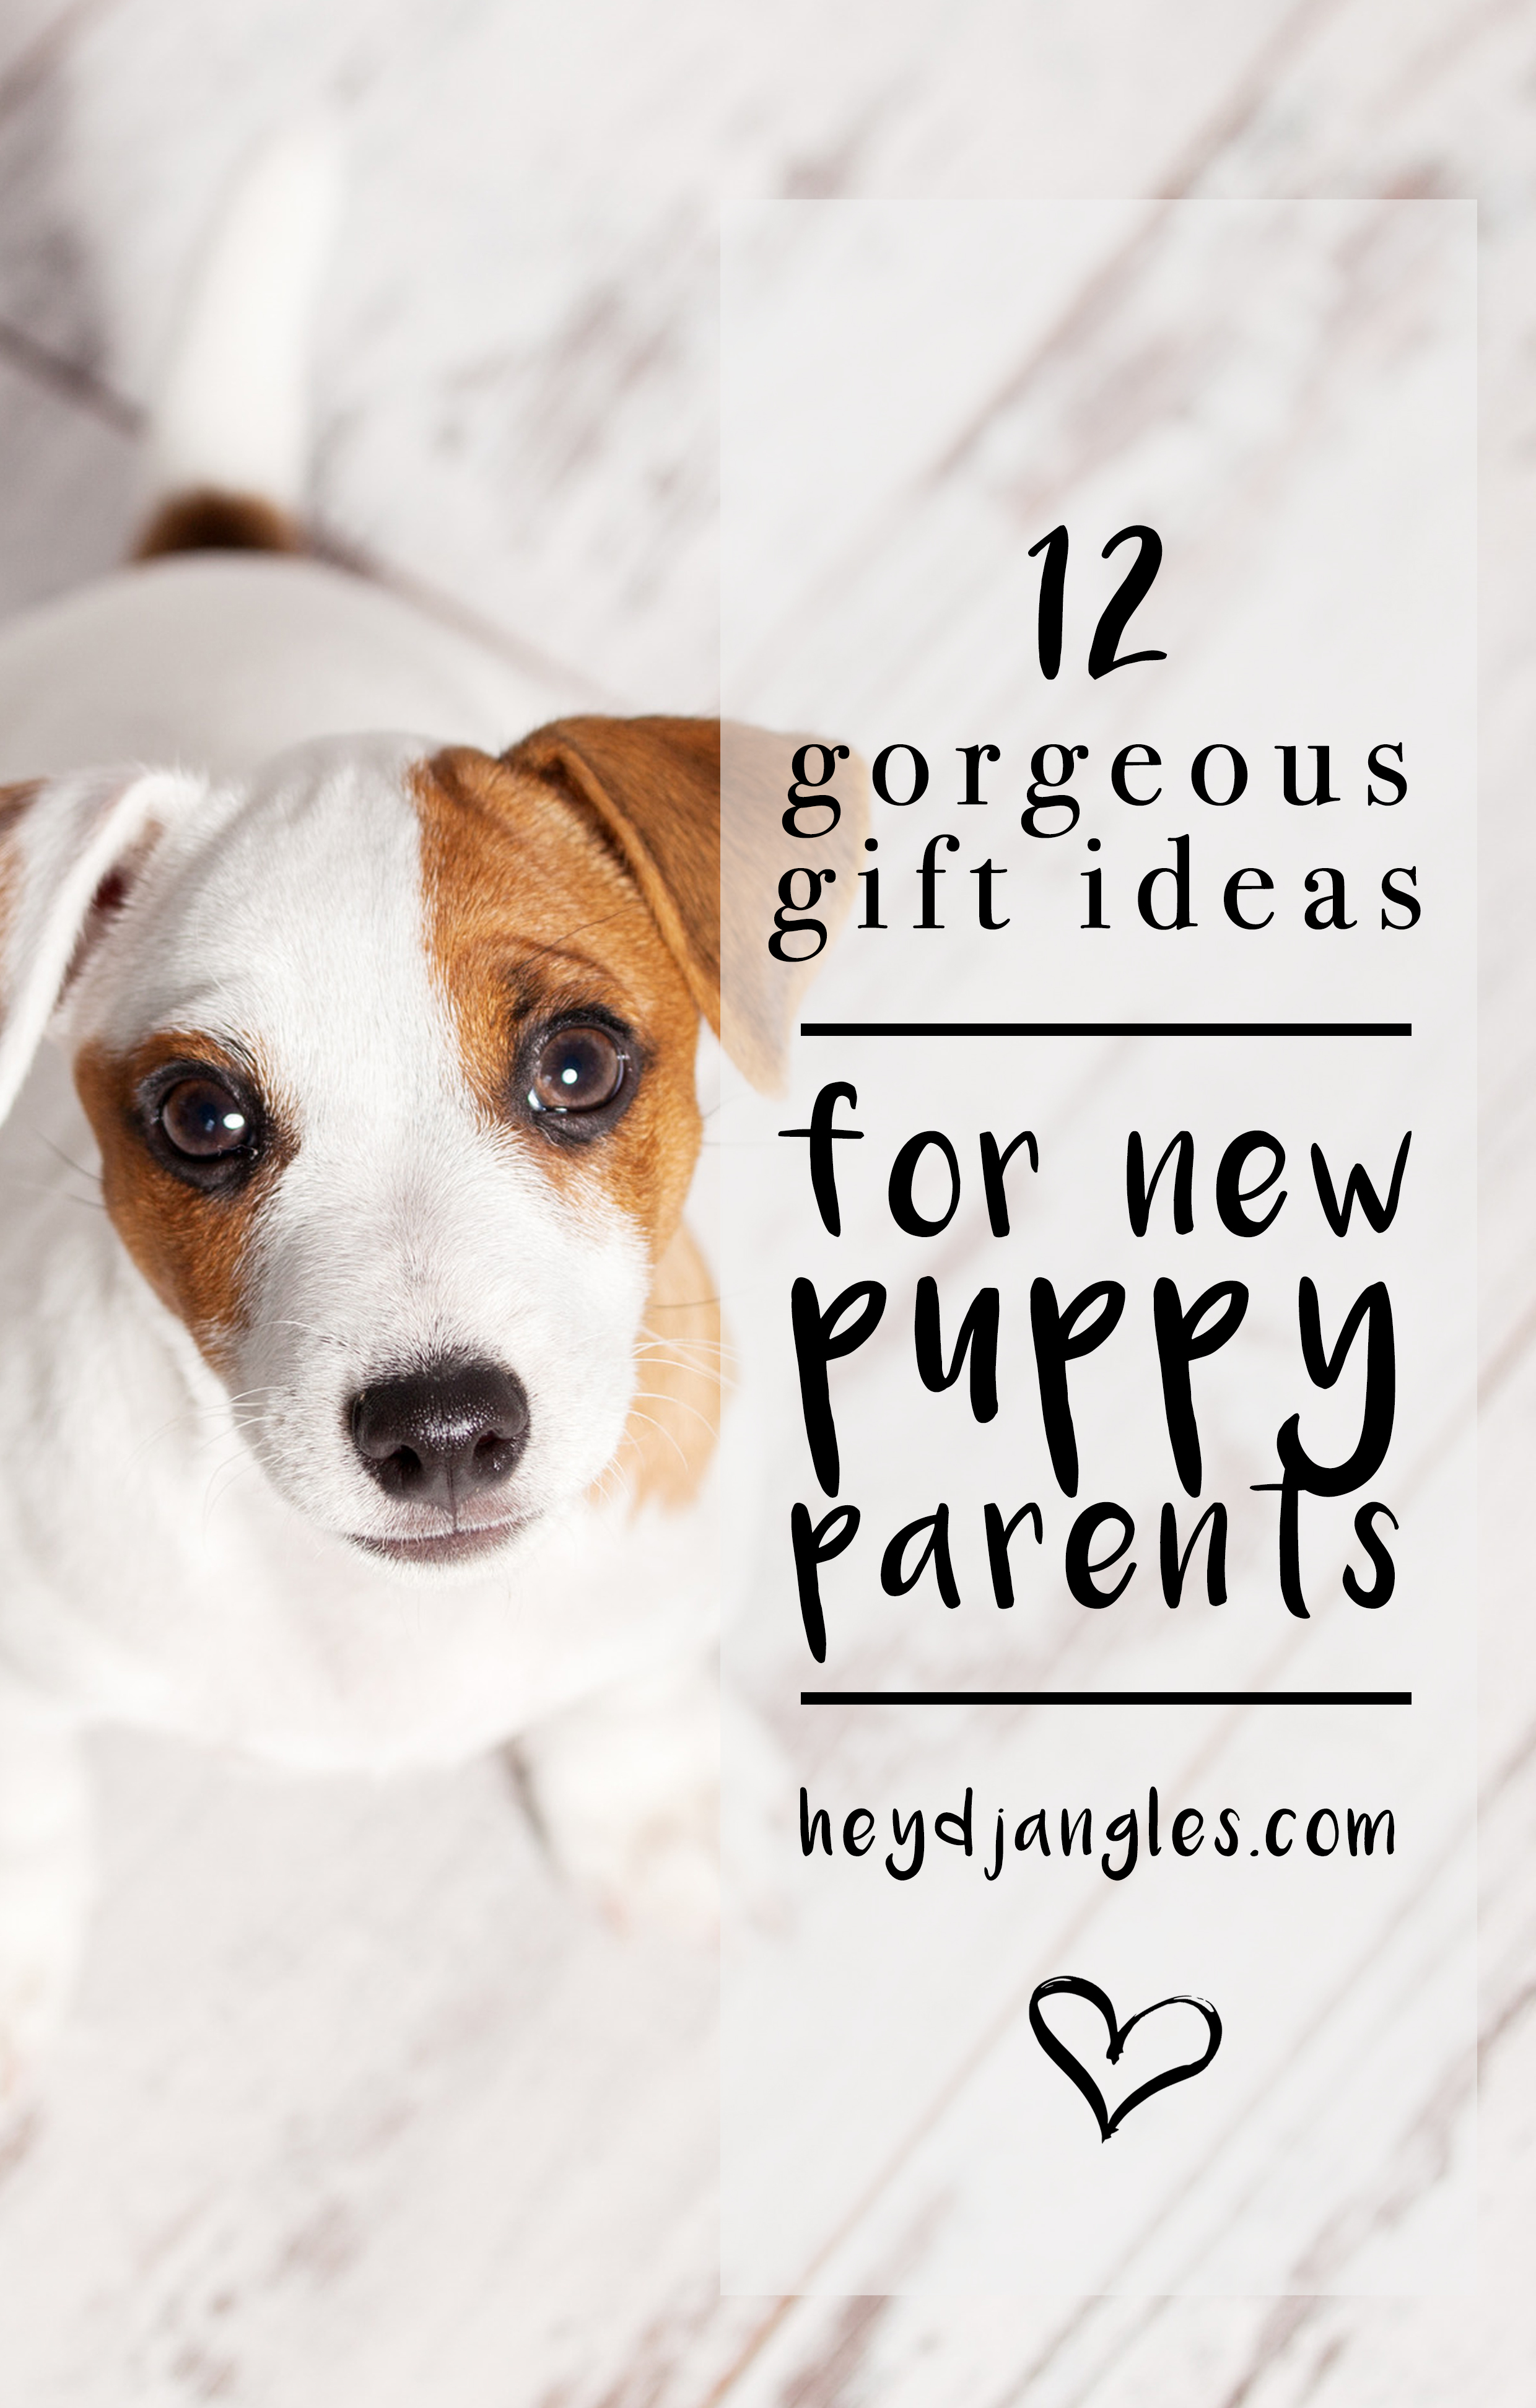 2 GORGEOUS GIFTS FOR NEW PUPPY PARENTS - Hey, Djangles. heydjangles.com, new puppy gift ideas, dog stuff, dog gifts, new dog owner gifts, puppy gift guide, first time dog owner gifts. #doglover #doggifts #puppylove